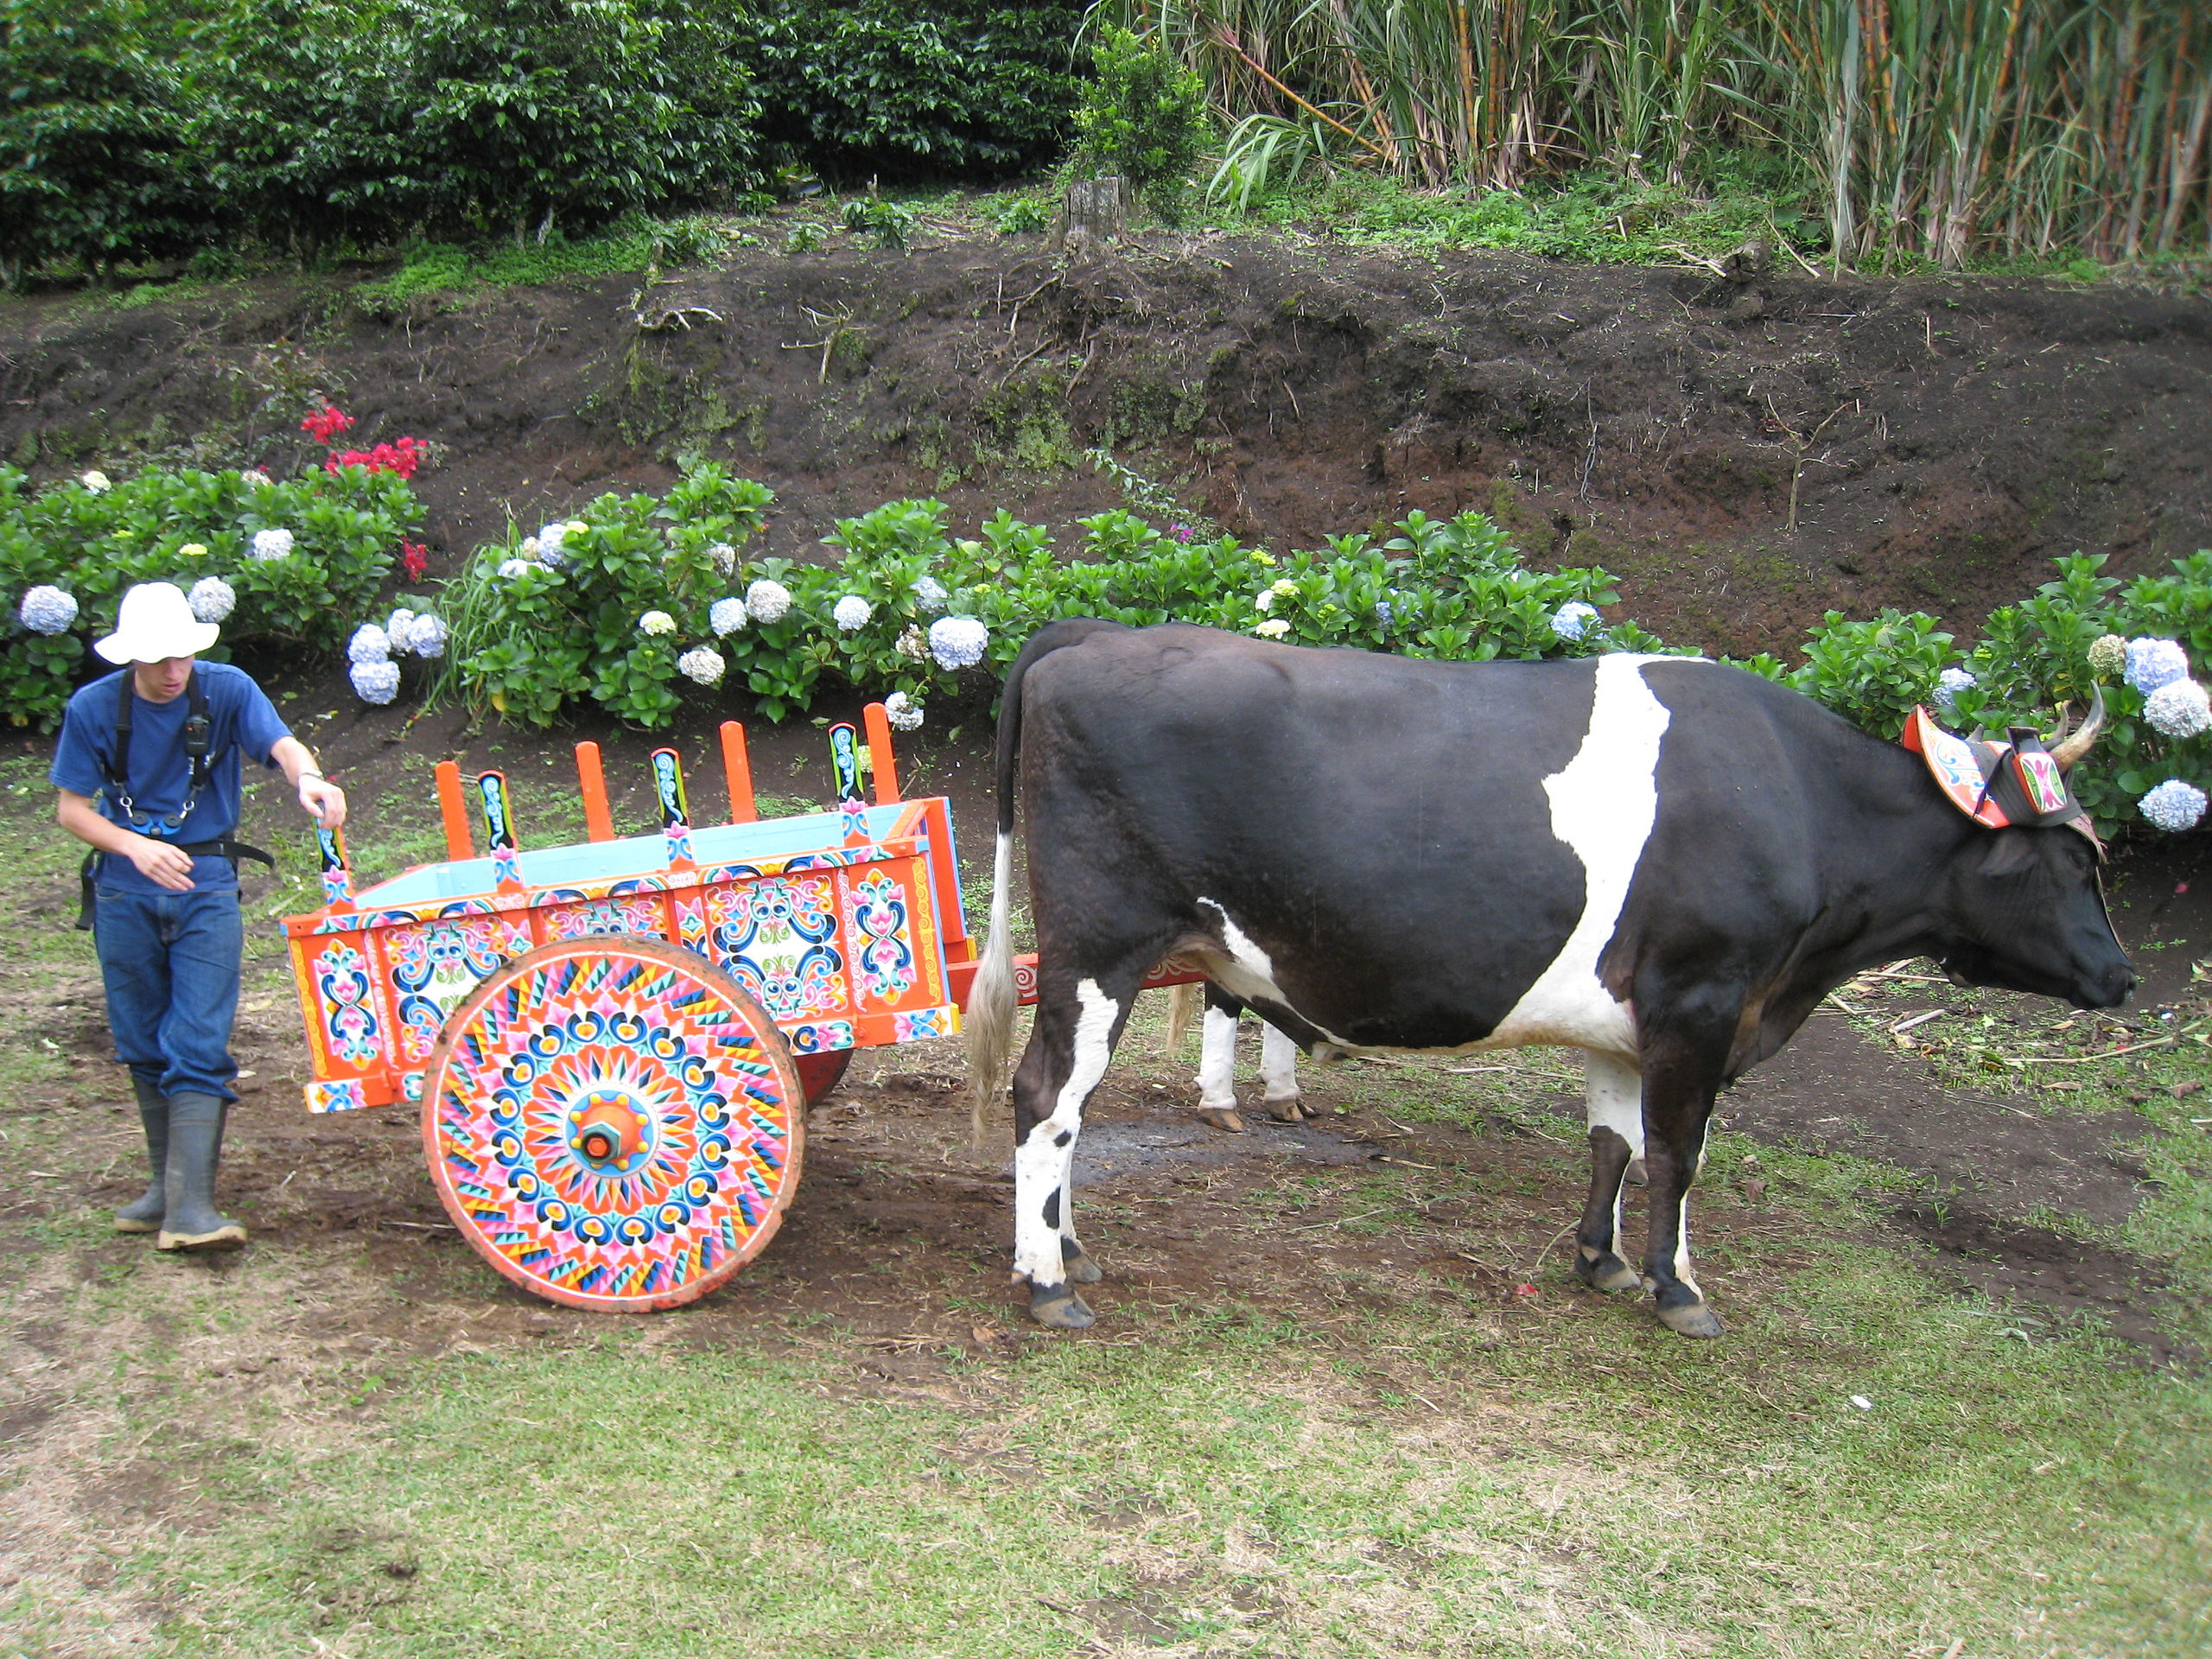 """Most people think of technological change as a distinctly modern phenomenon, but in terms of your back the most important event ay have been the introduction of the ox cart. """"The cow pushing the decorated cart"""" by Chad Rosenthal from Jerusalem, Israel - The cow pushing the decorated cart. Licensed under CC BY 2.0 via Wikimedia Commons - http://commons.wikimedia.org/wiki/File:The_cow_pushing_the_decorated_cart.jpg#mediaviewer/File:The_cow_pushing_the_decorated_cart.jpg"""